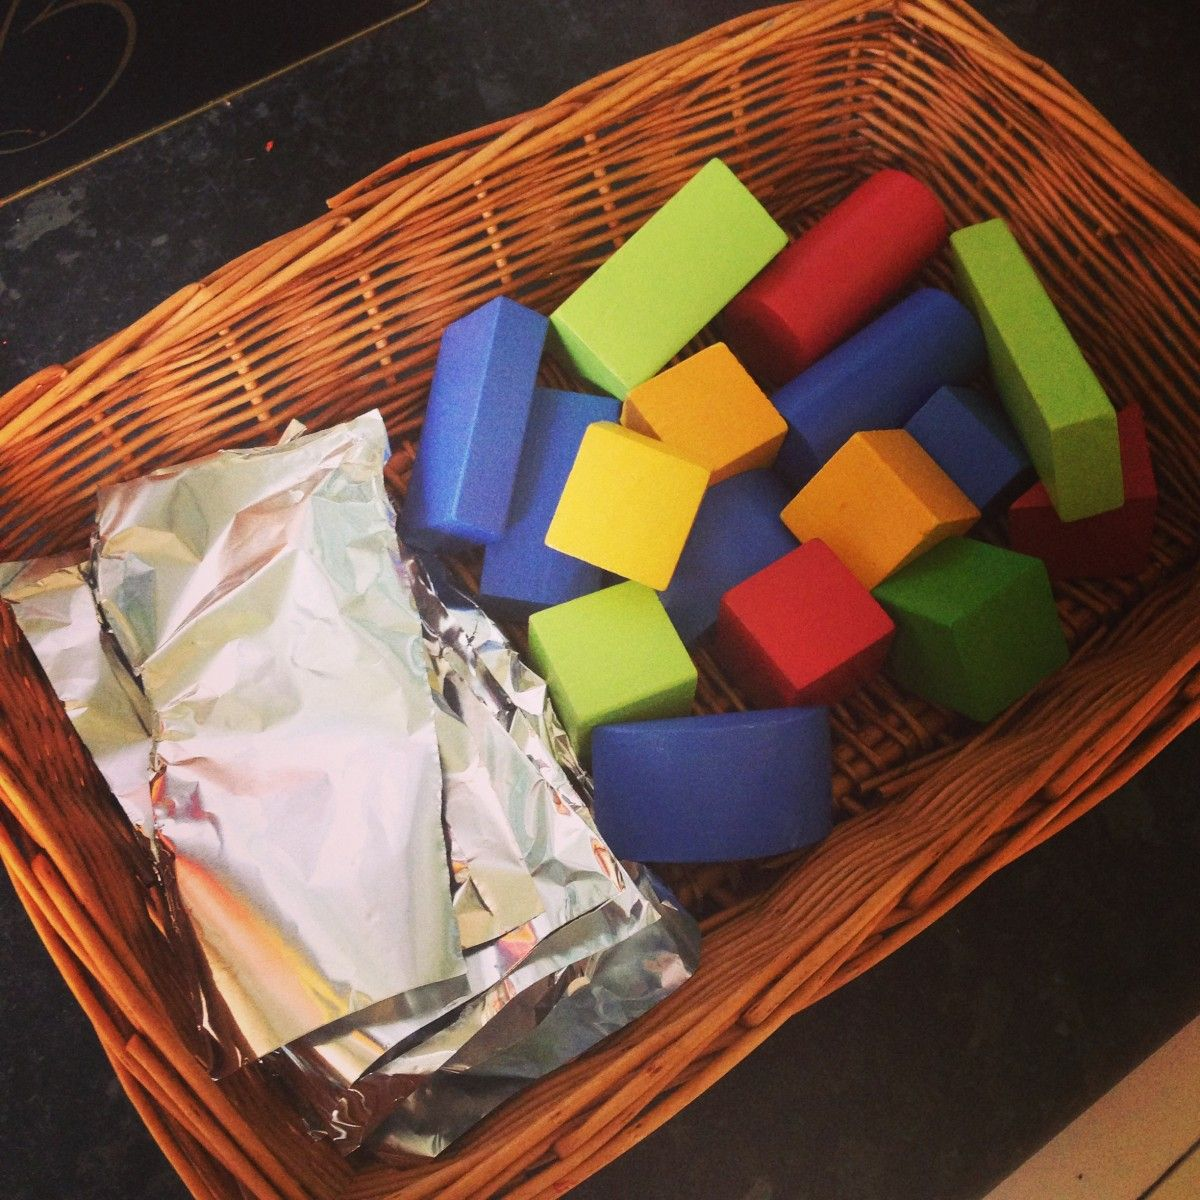 Invitation to Play with Blocks Space preschool, Infant